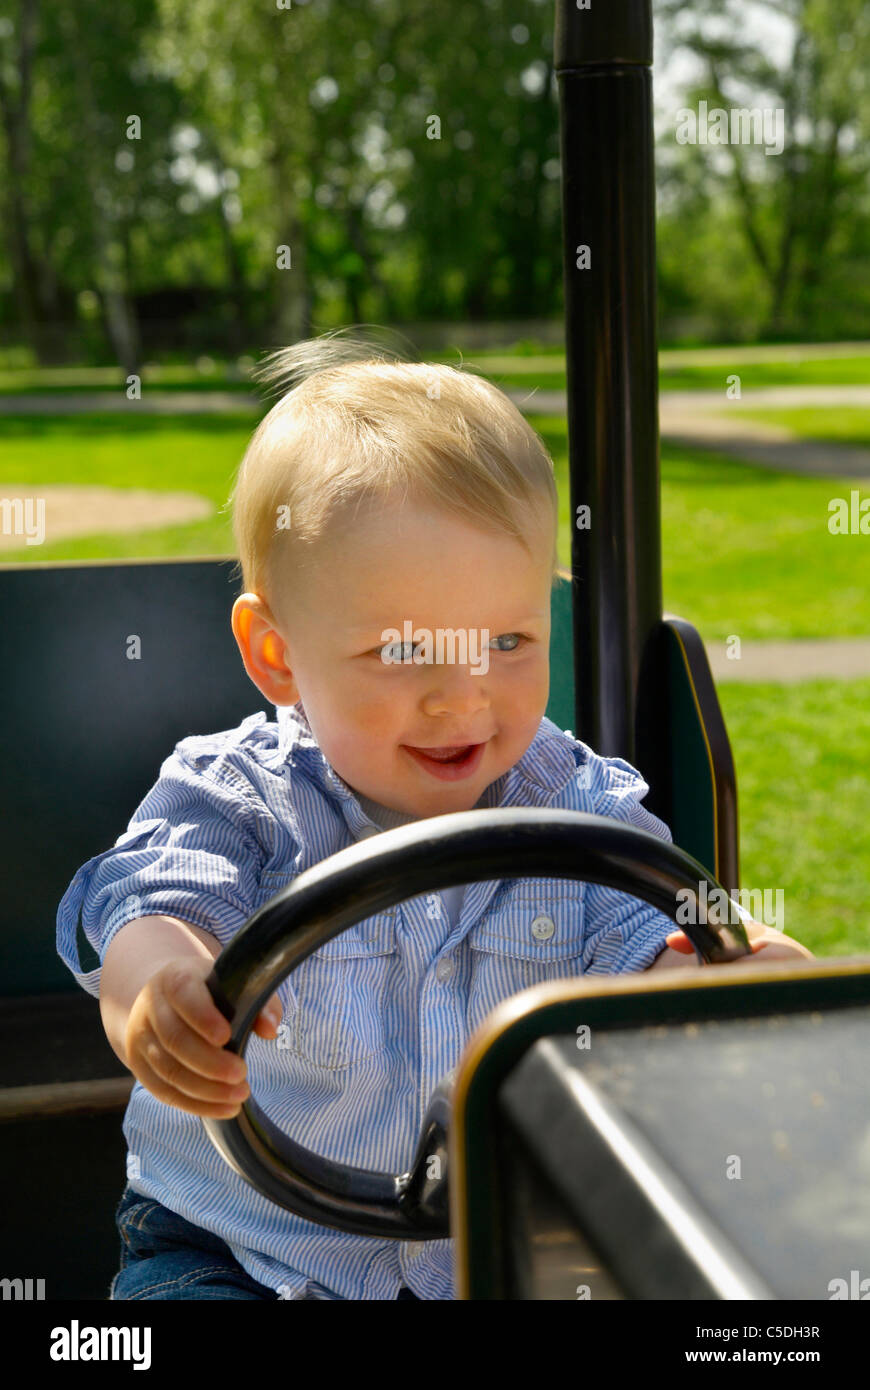 Cute little boy driving cropped toy car in the playground Stock Photo